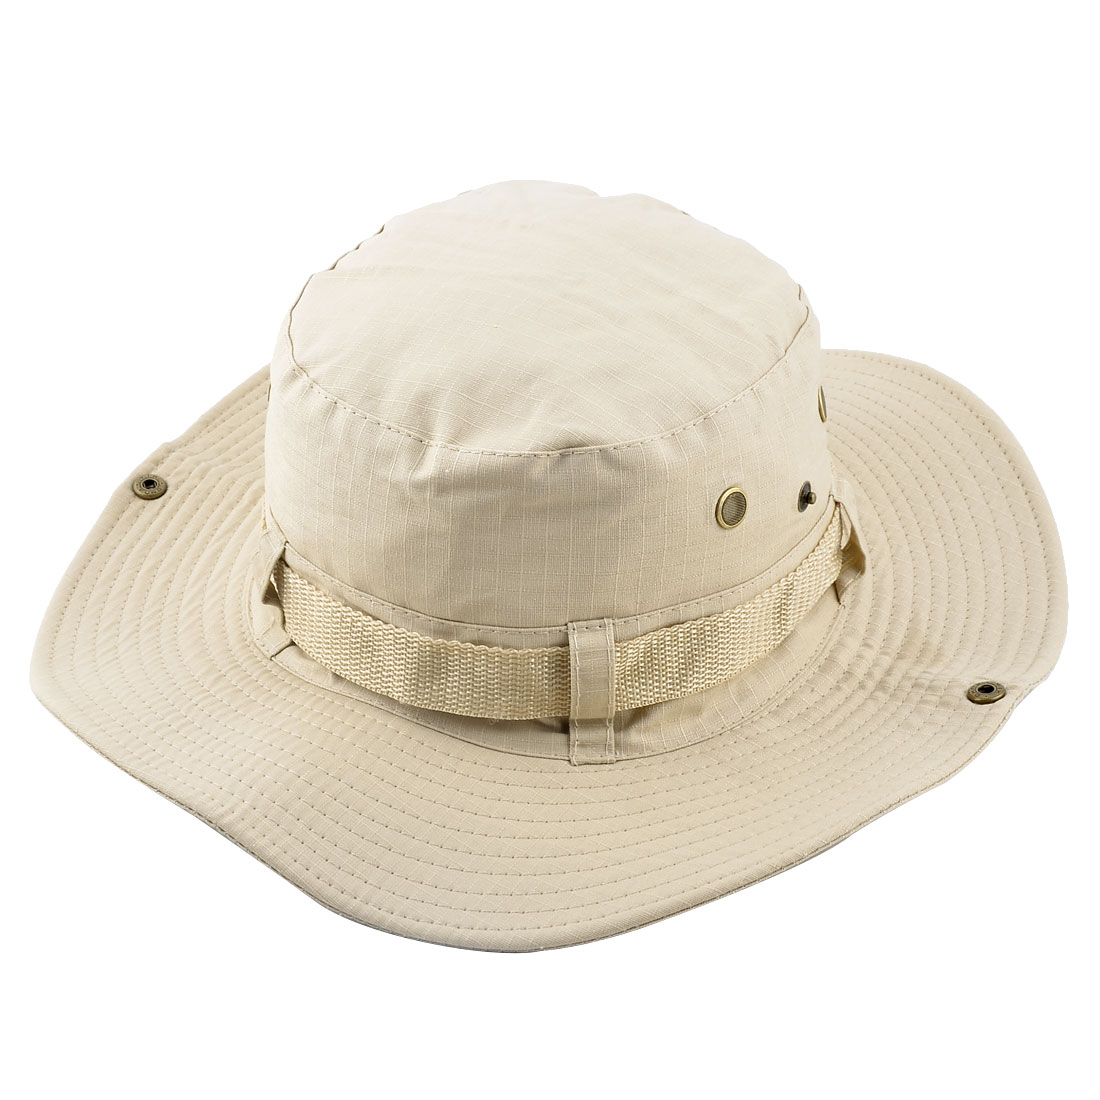 Fisherman Outdoor Sports Hiking Hunting Adjustable Strap Wide Brim Sun Protector Bucket Summer Cap Fishing Hat Beige